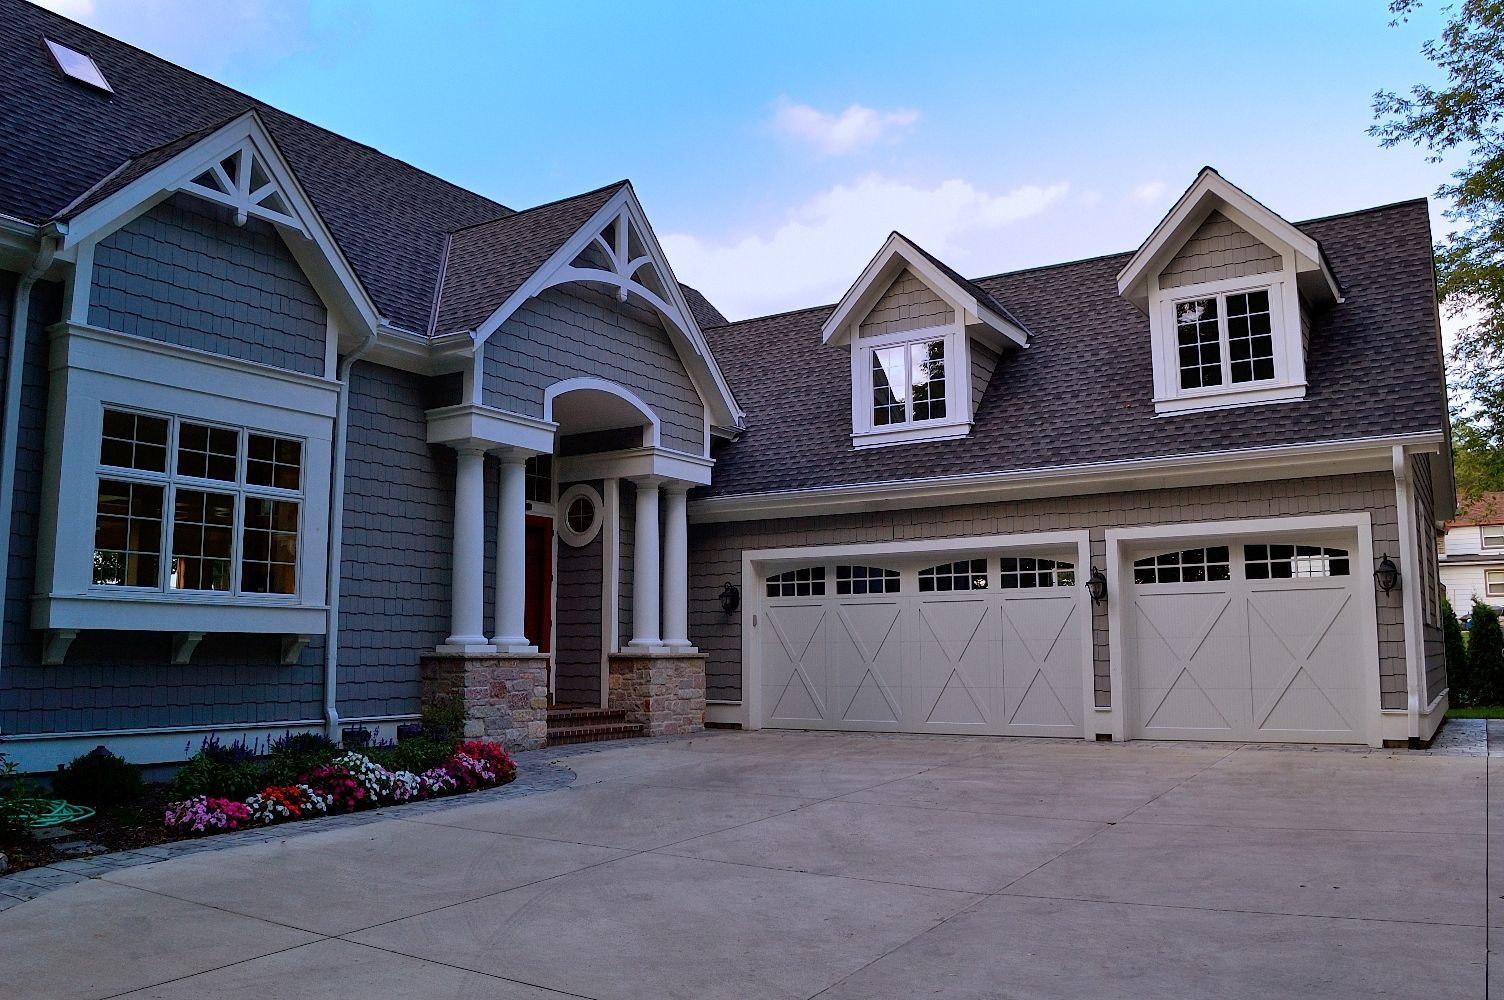 Carriage House Garage Doors By CHI Overhead